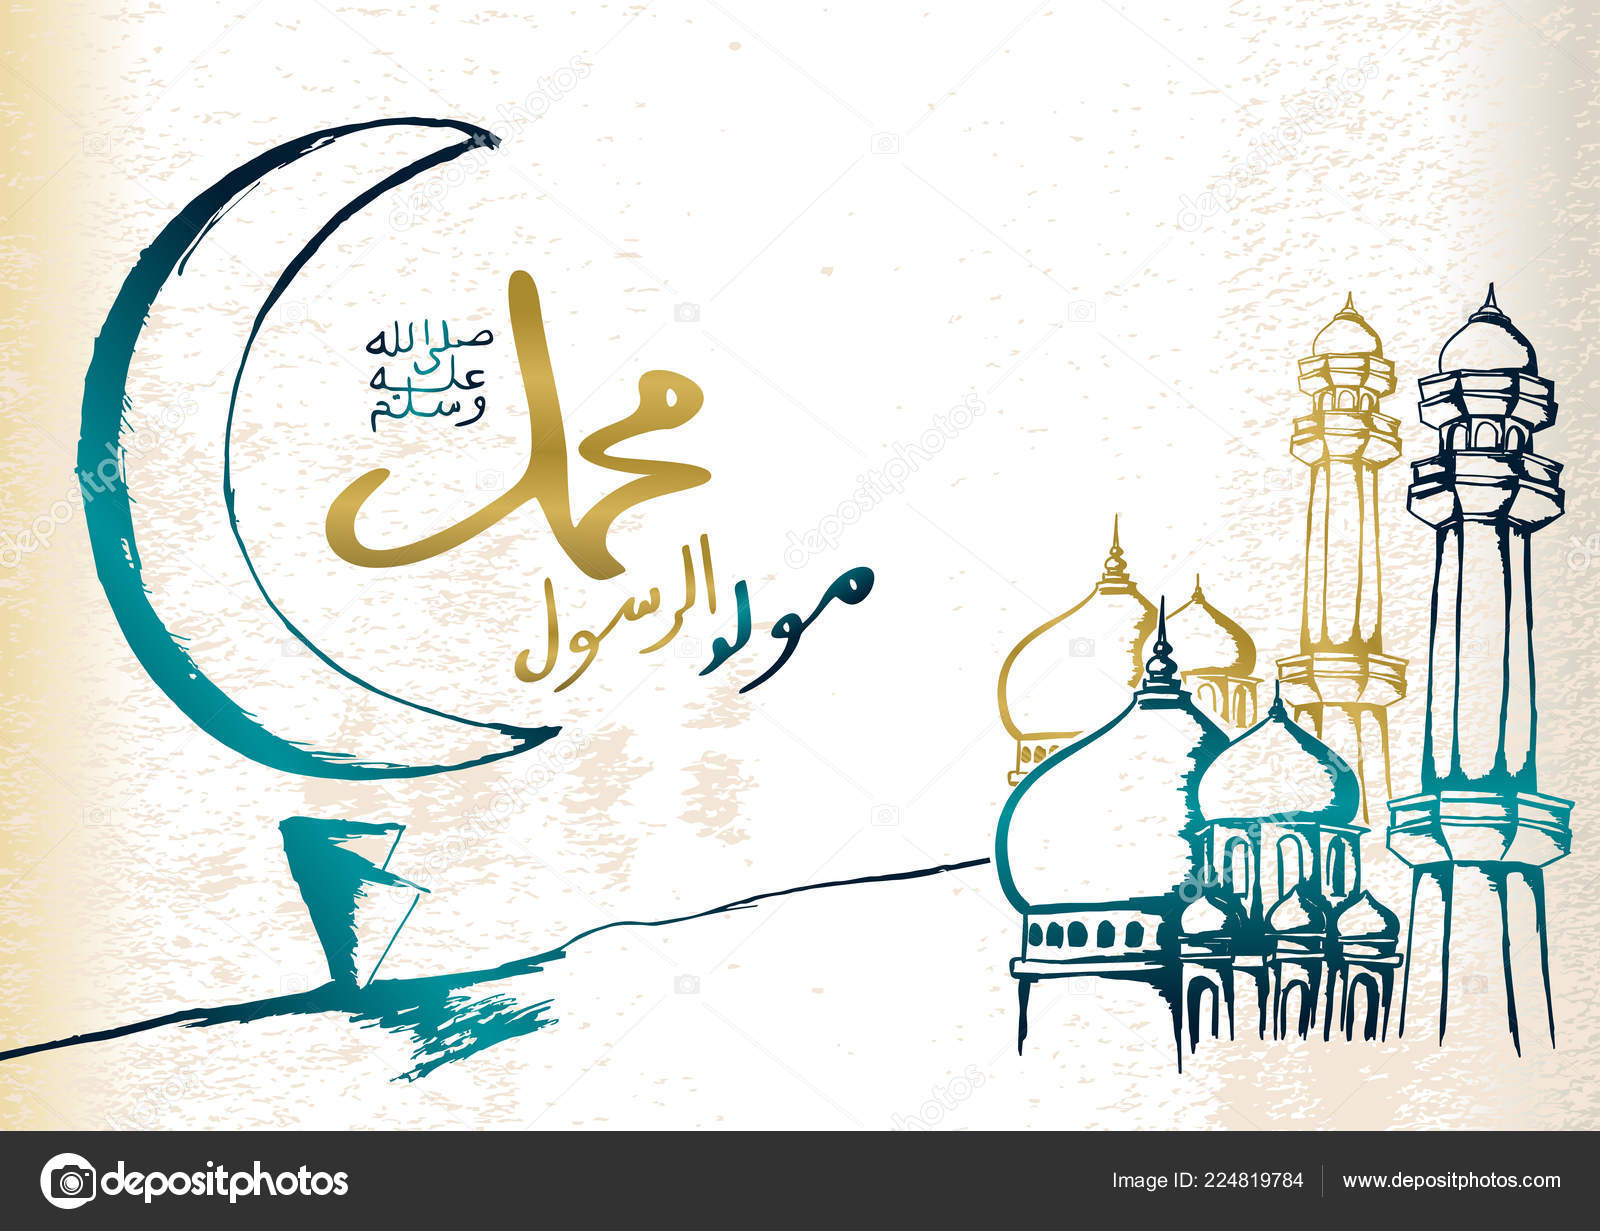 Calligraphie Arabe Dessin Mawlid Rasul Main Dessinée Illustration Vectorielle Calligraphie